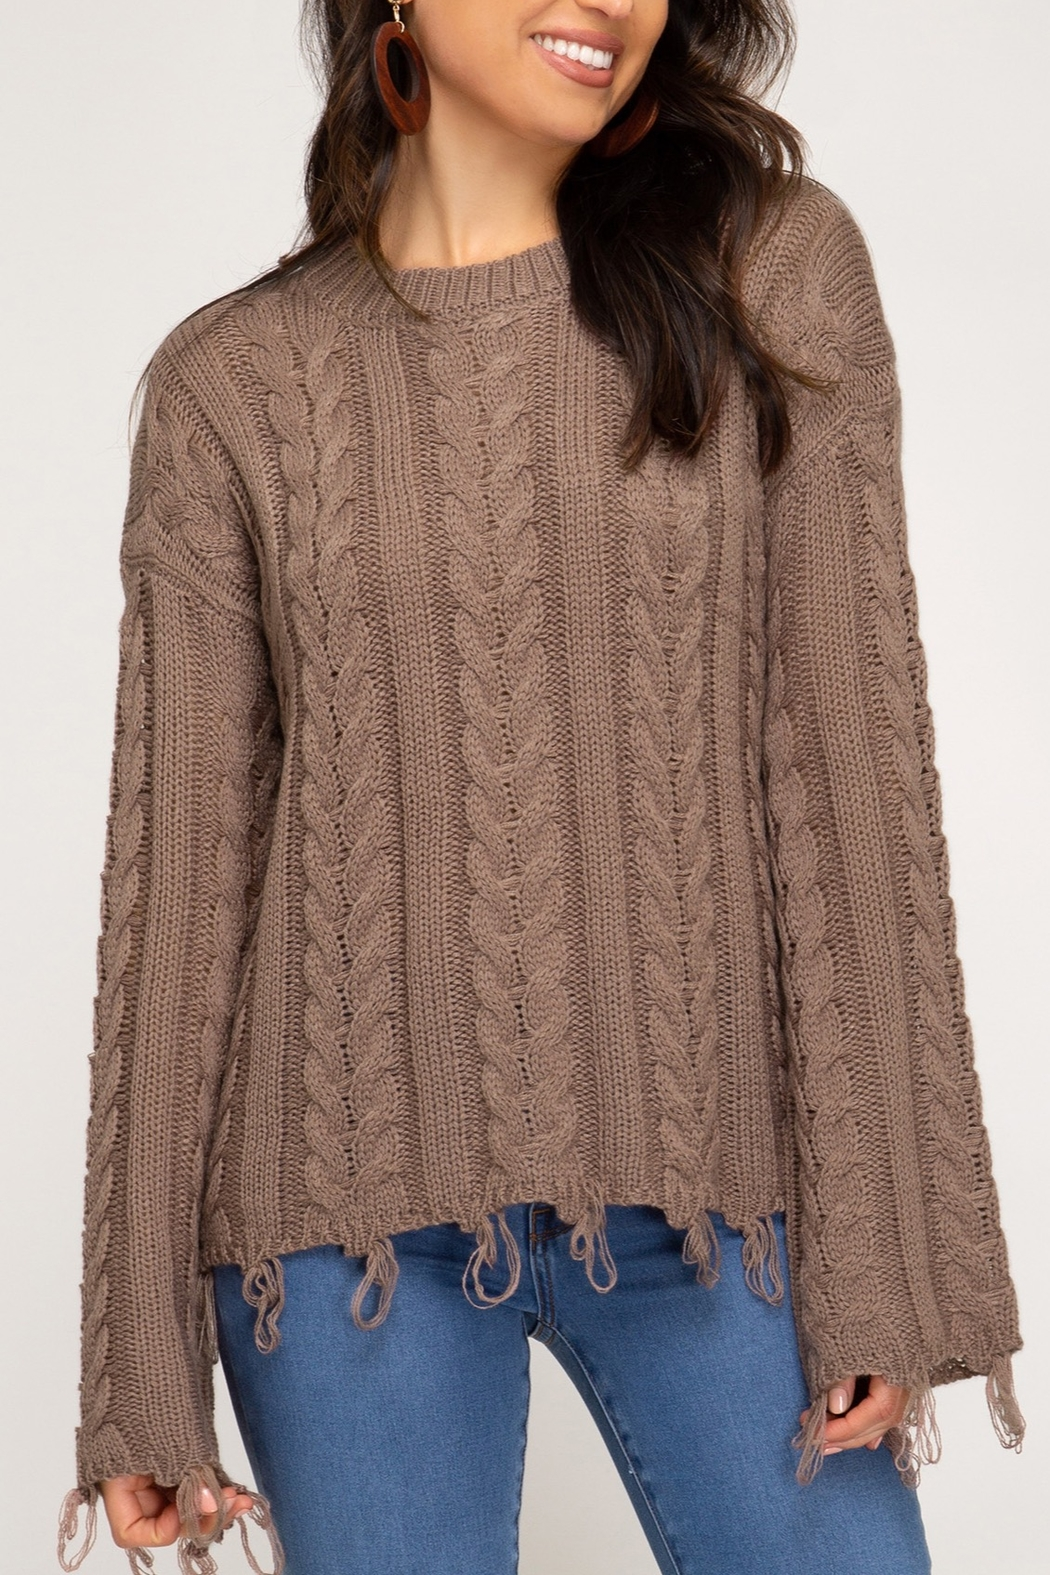 She + Sky Casual Encounters Sweater - Front Cropped Image